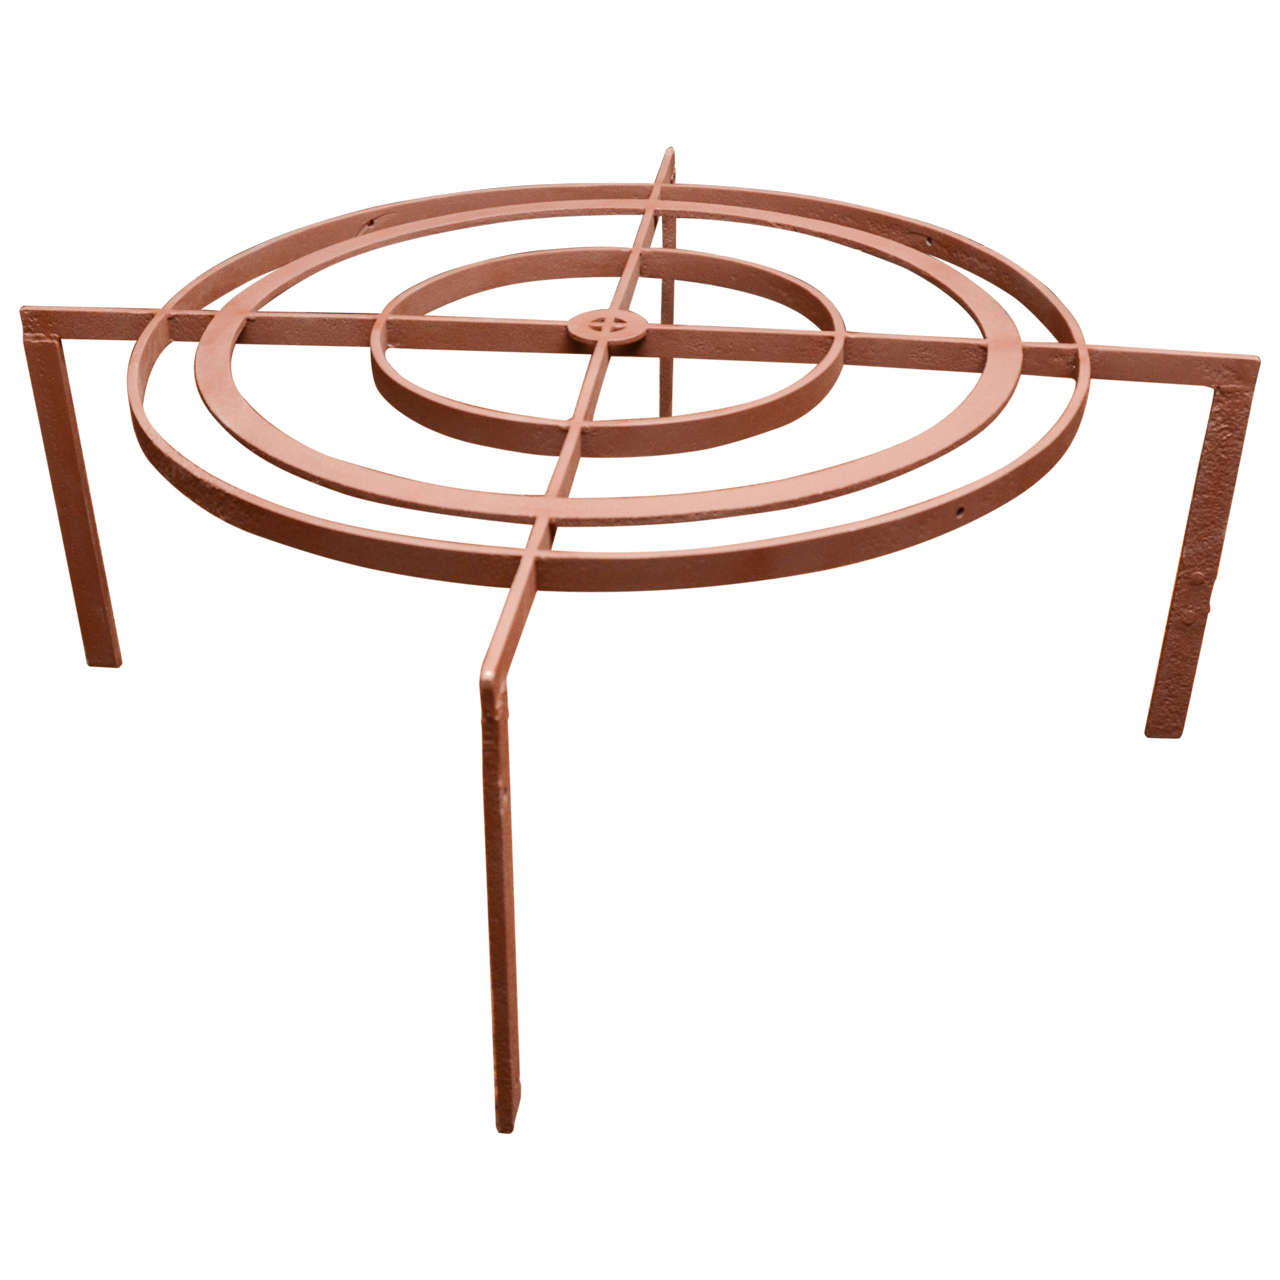 Iron Gate Coffee Table Turn Of The Century French Iron Gate In Concentric Circular Form